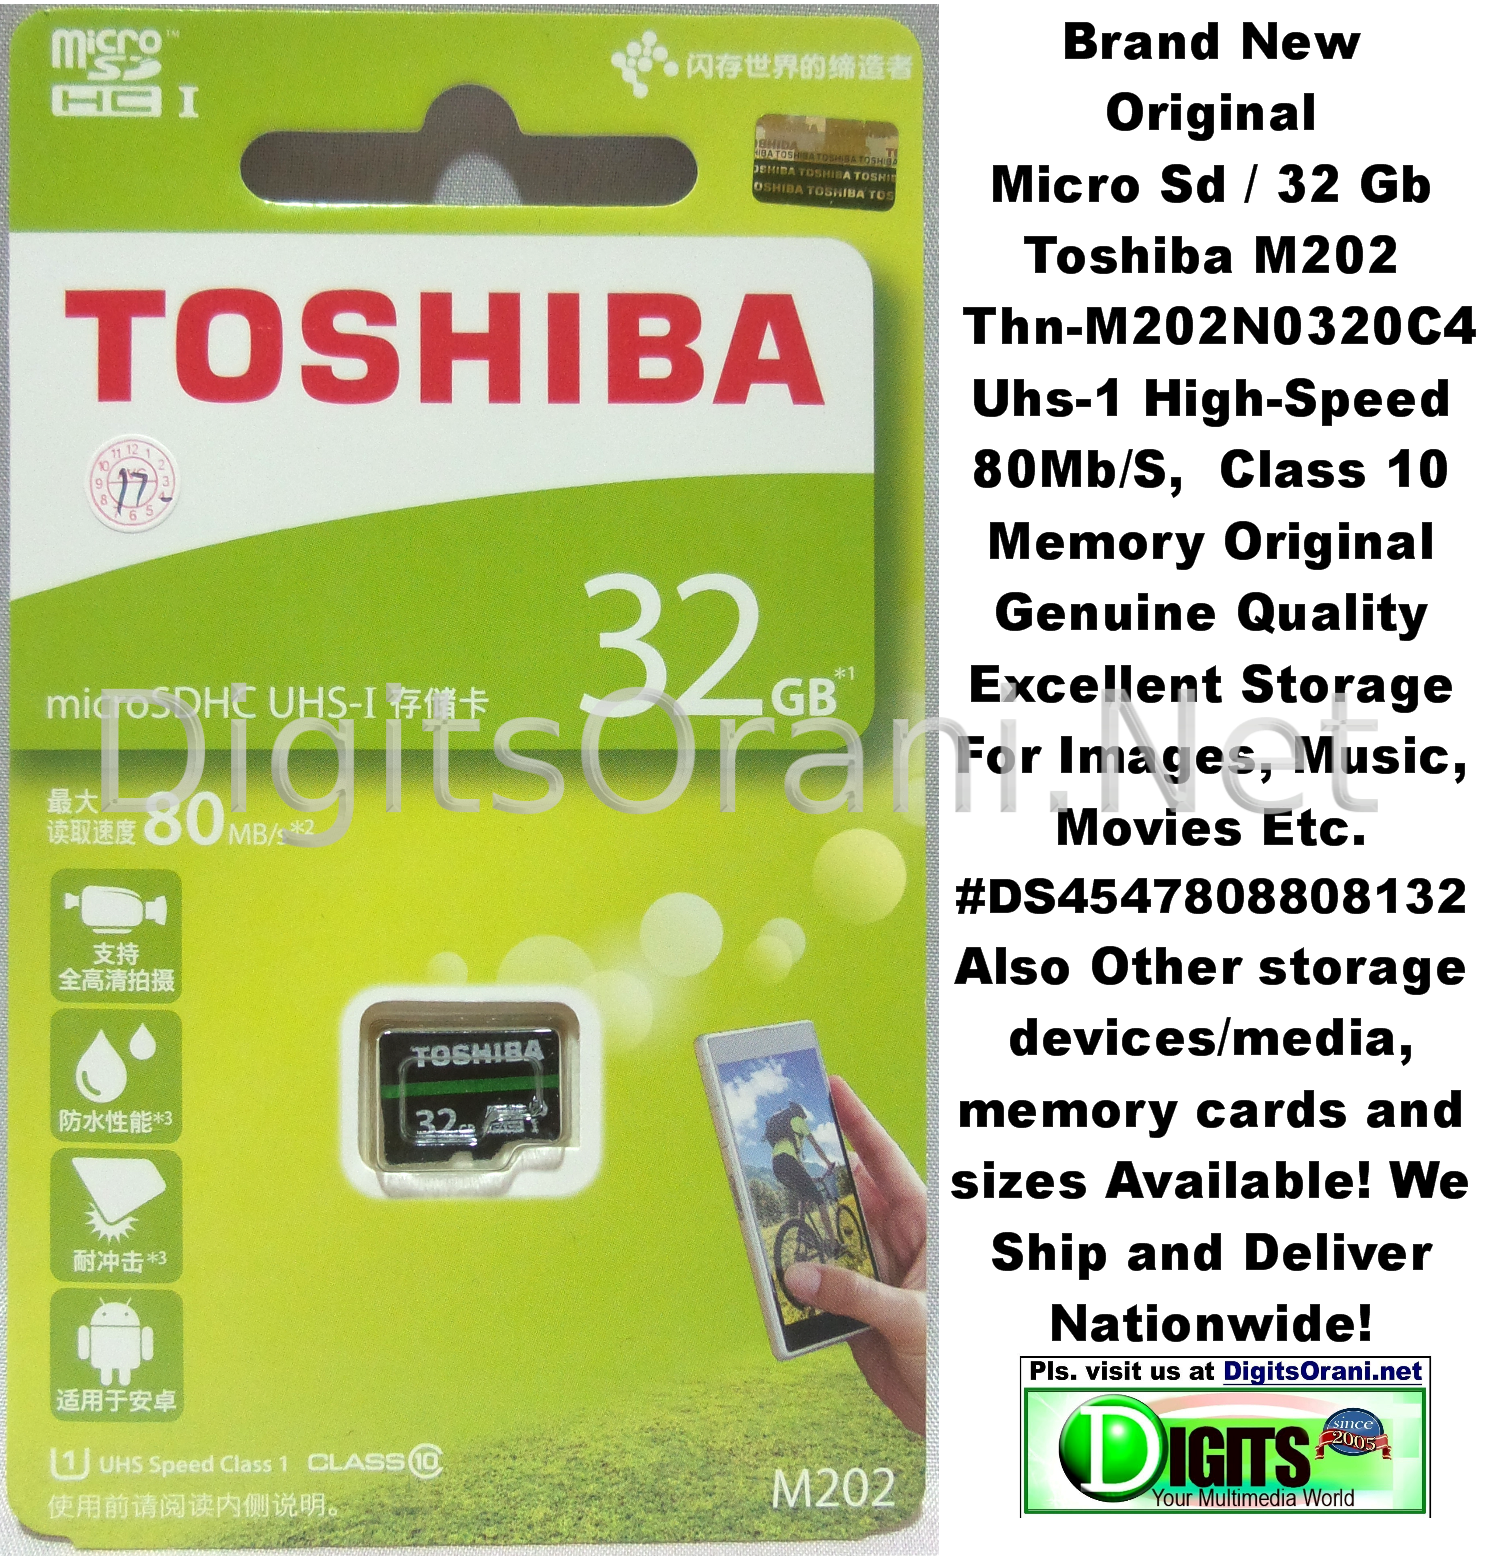 Original Memory Micro Sd 32gb Toshiba M202 Thn M202n0320c4 Uhs 1 Sandisk Ultra 32 Gb Class 10 80mb S Adapter Touch To Zoom